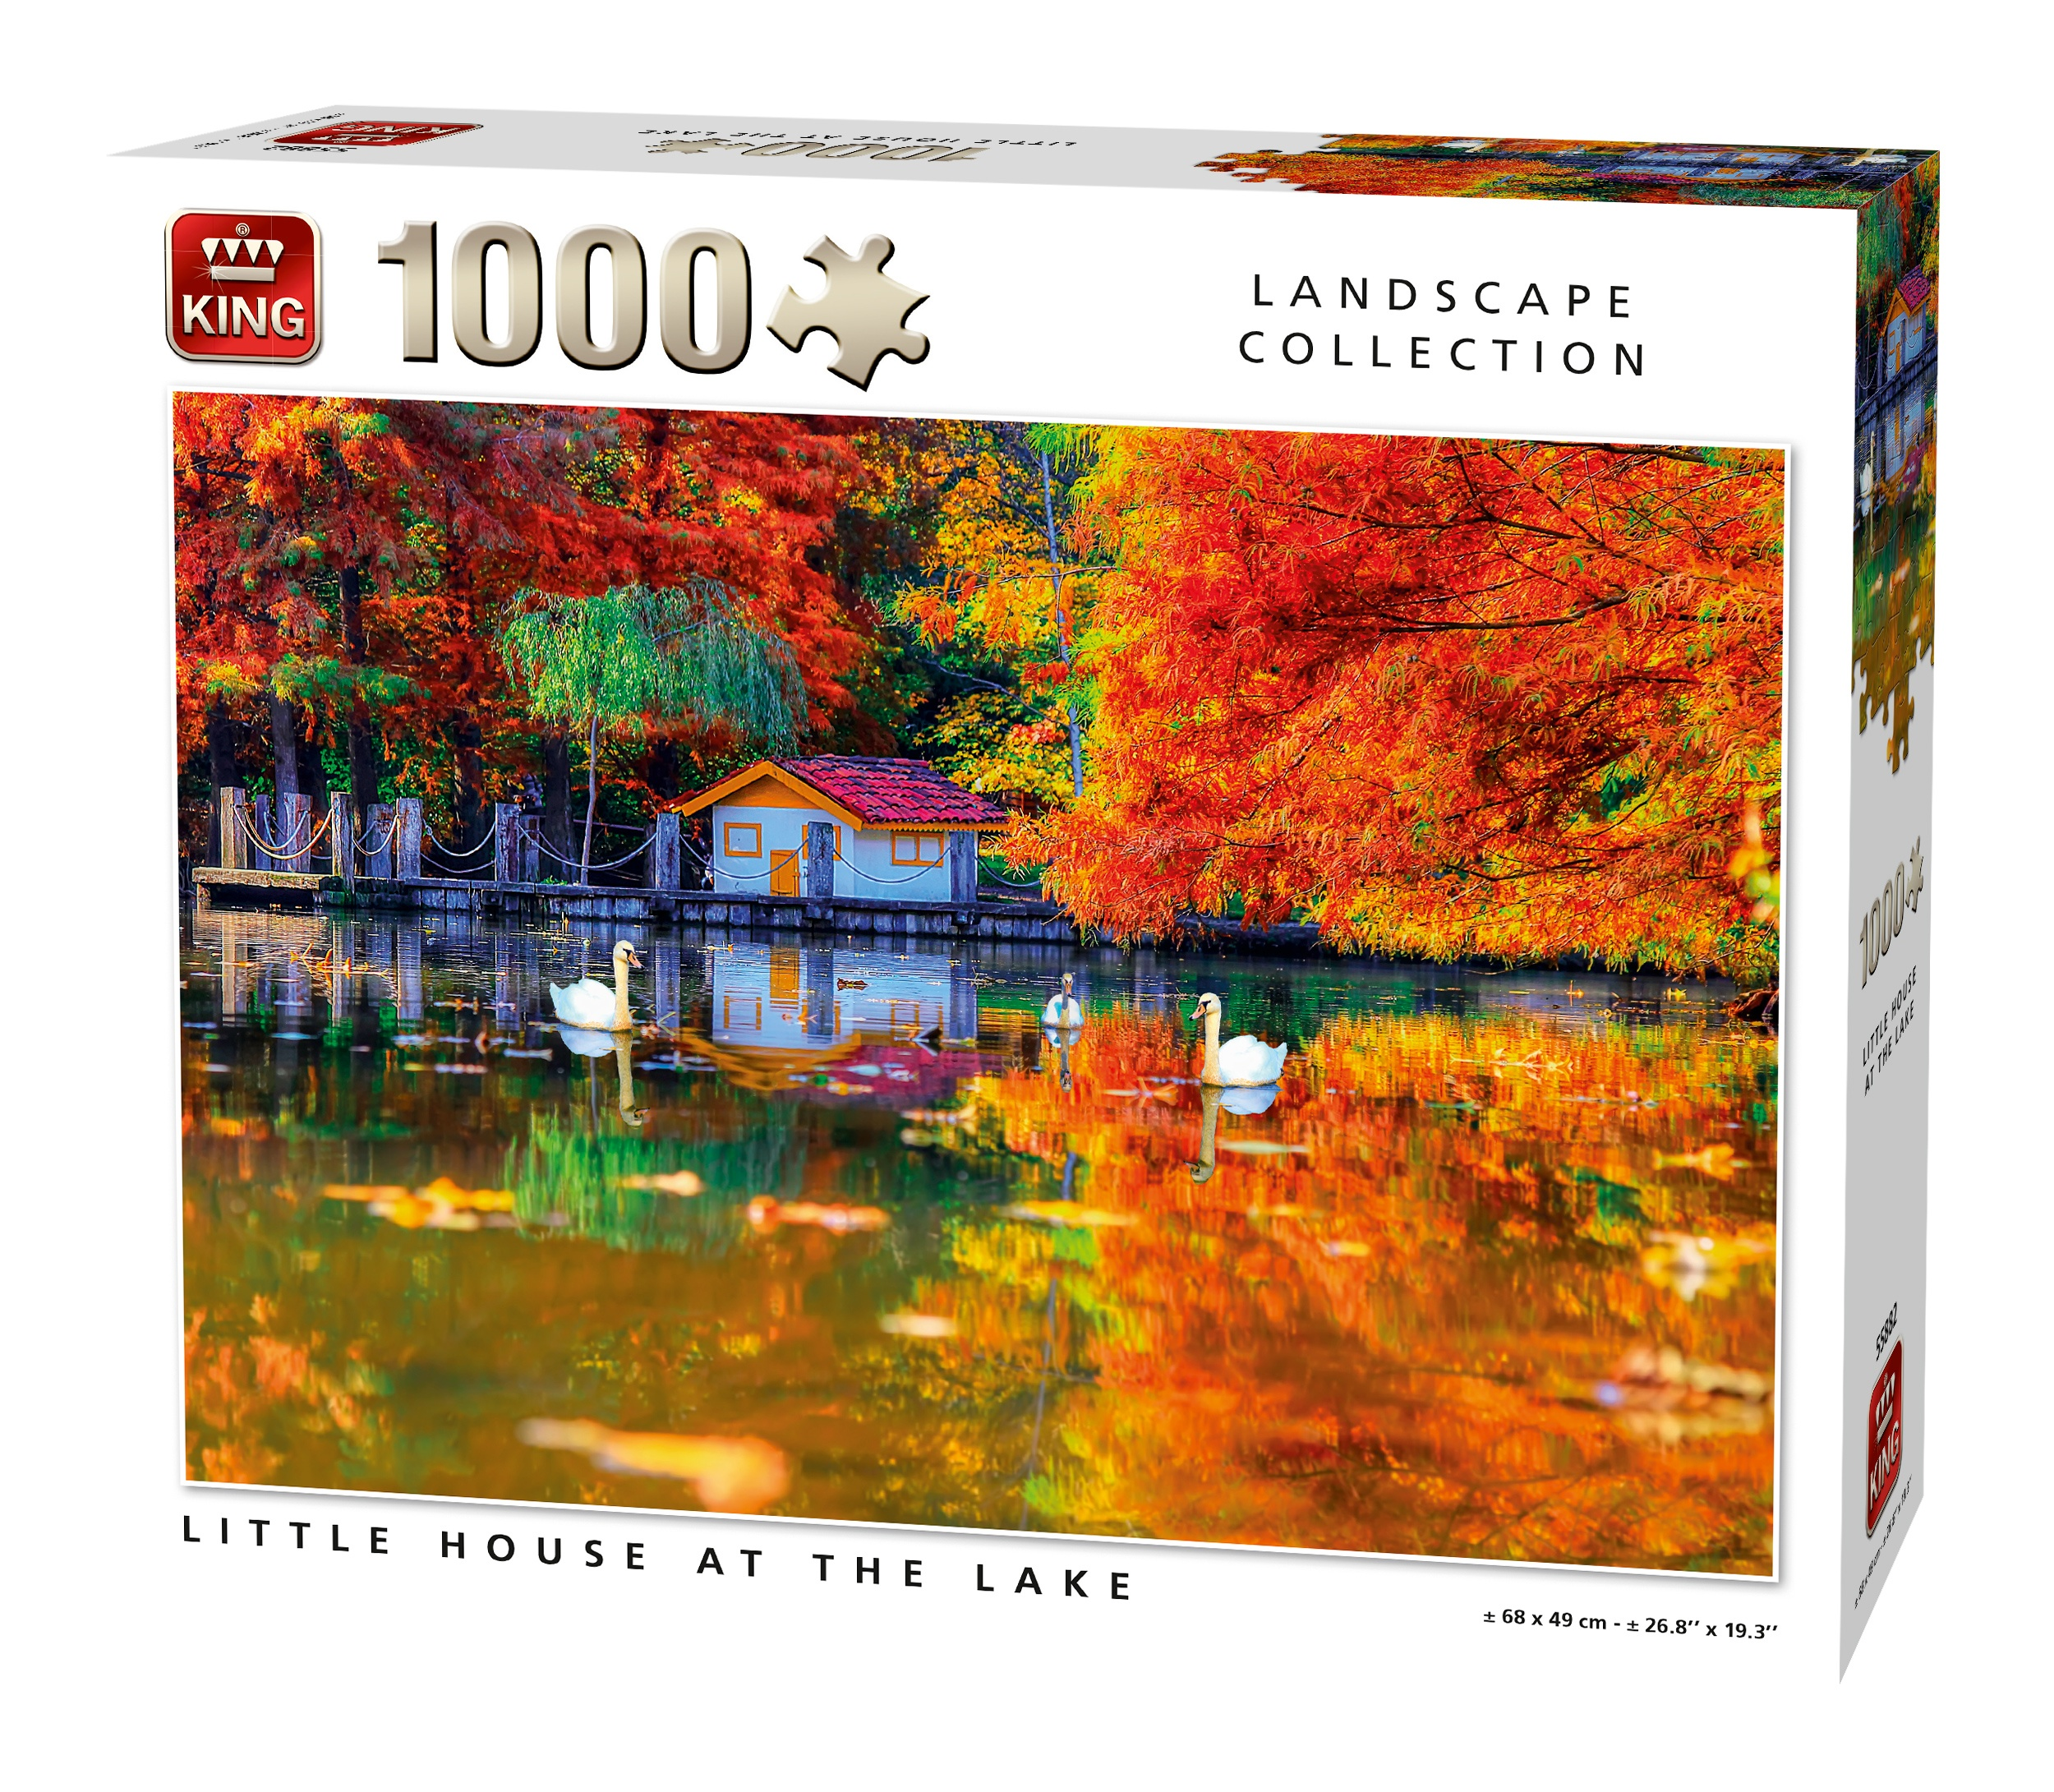 King puzzel 1000 st. 55882